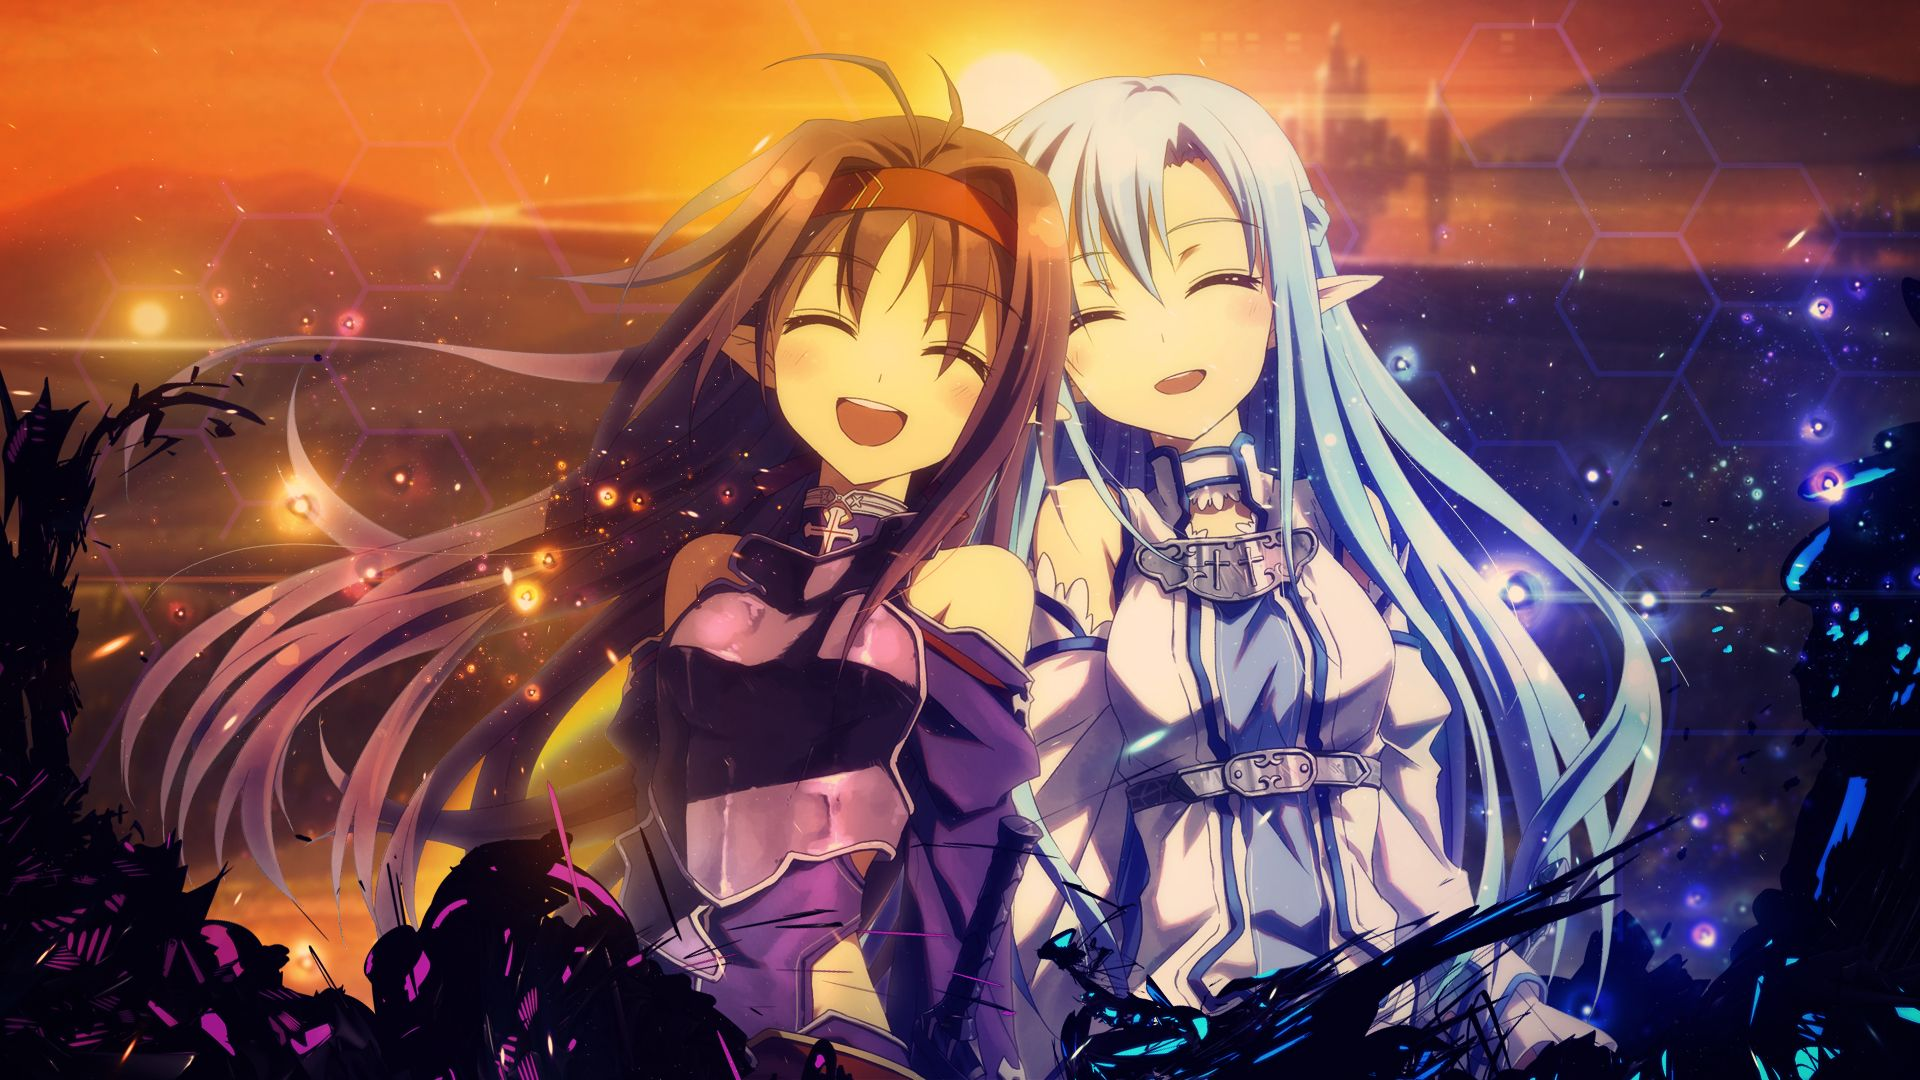 Art Online Sword Asuna And Yuuki Wallpaper By Trinexz D89jtcr 1920x1080